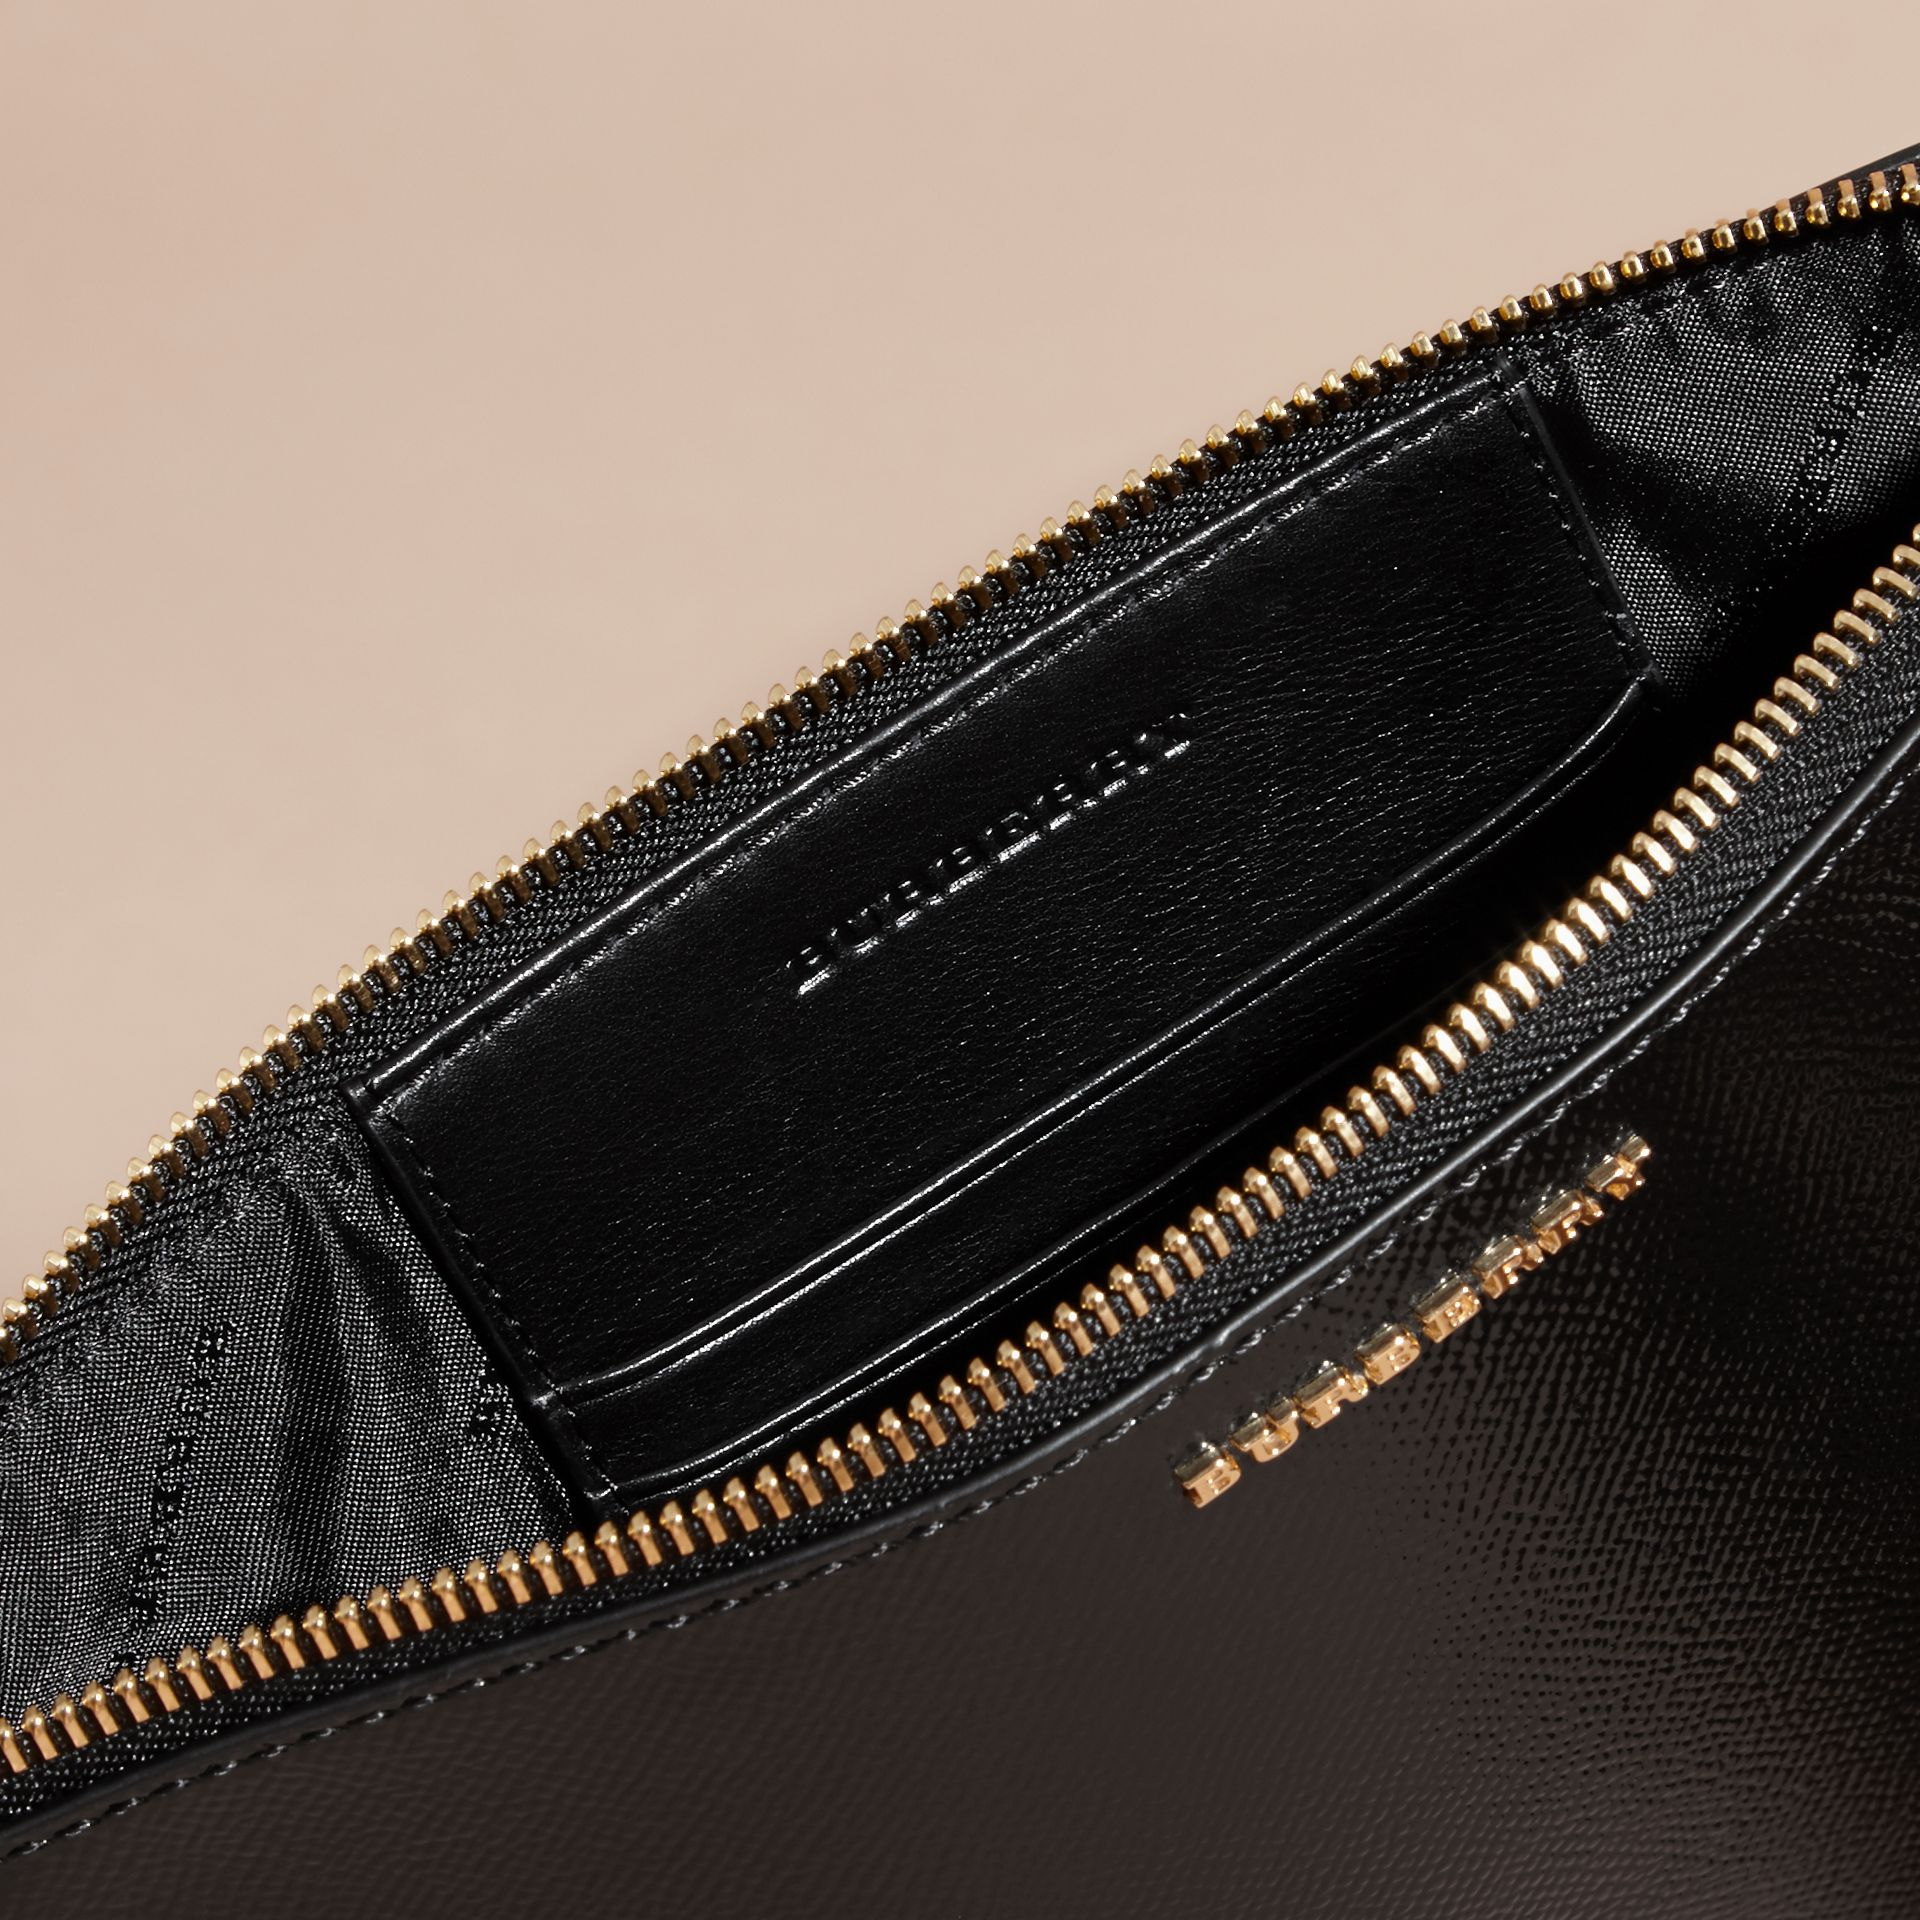 Patent London Leather Clutch Bag in Black - gallery image 6